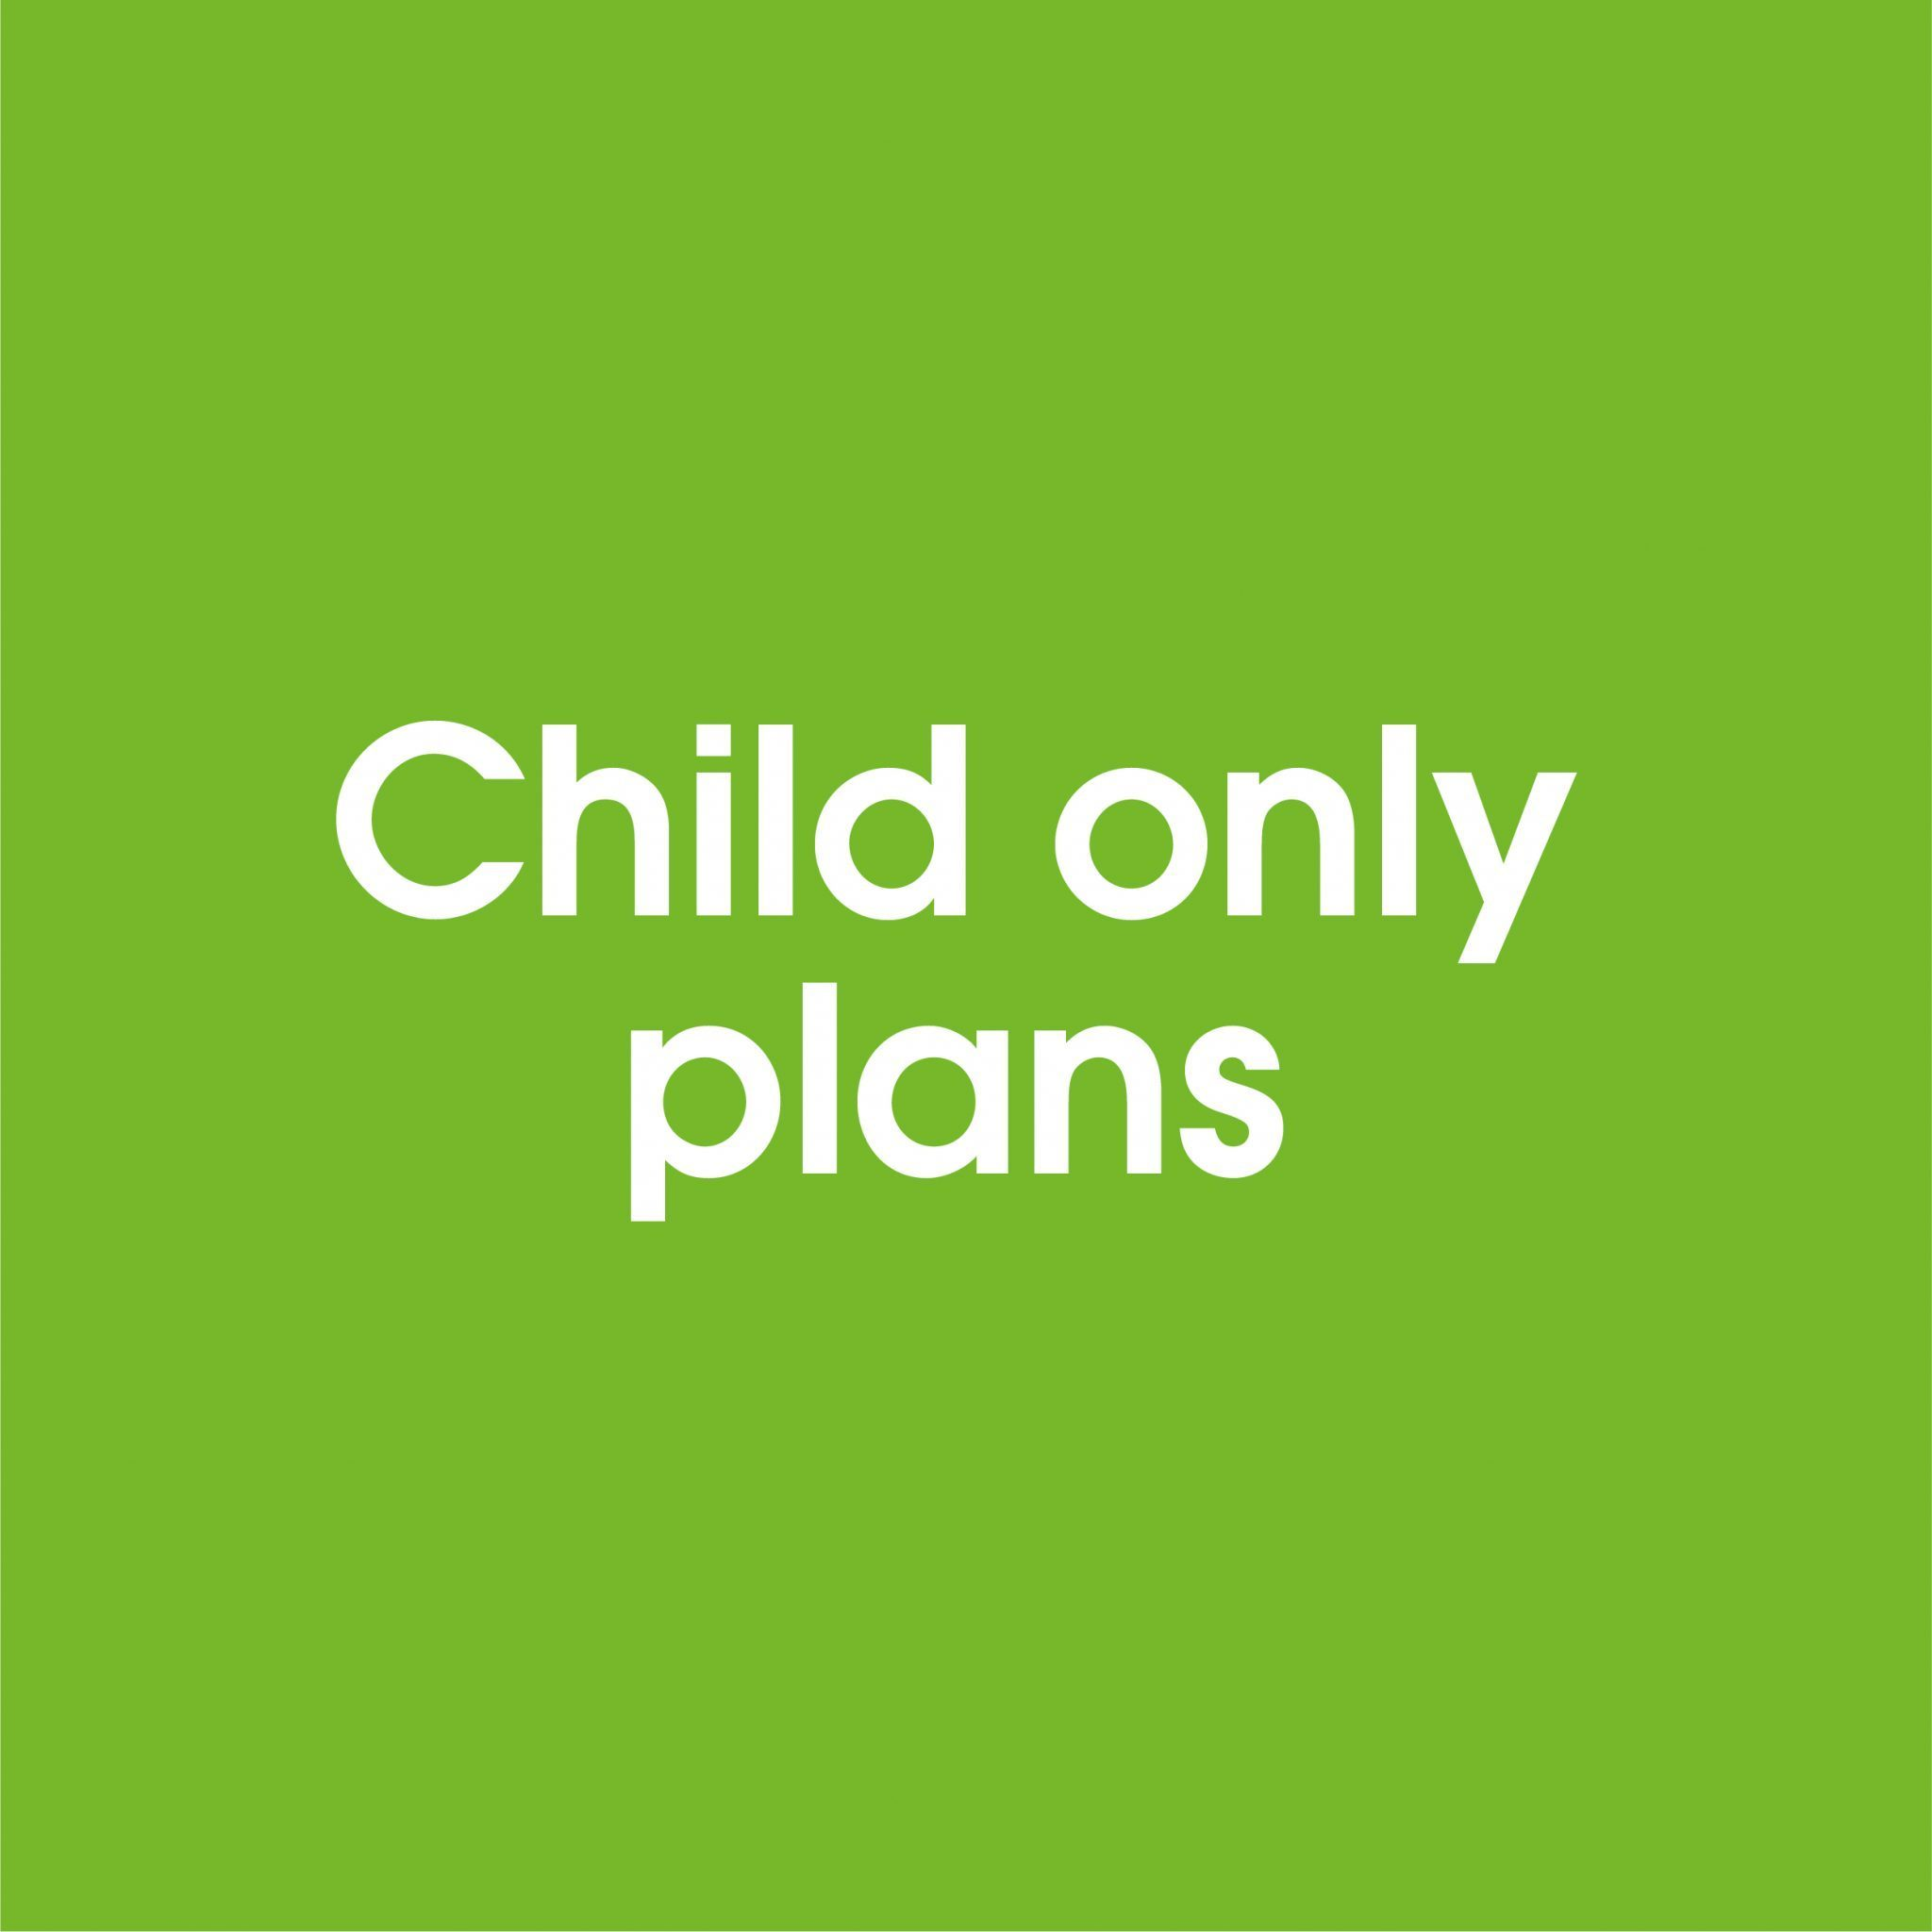 child-only-plans-william-russell